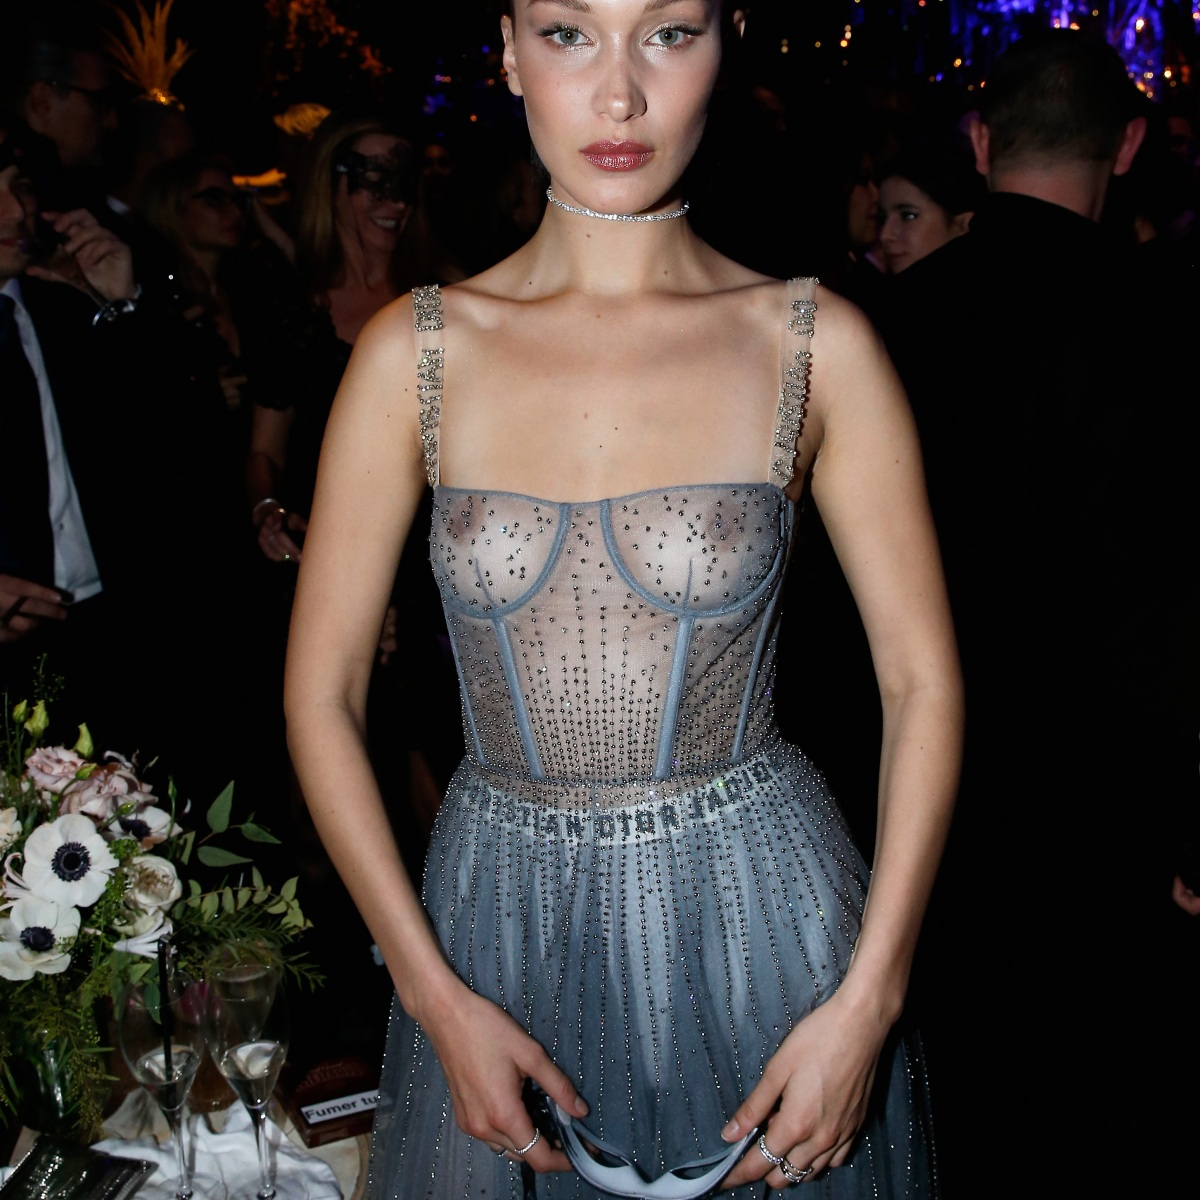 b8be94af45 Bella Hadid Exposes Her Nipples in Completely Sheer Dress at the Dior  Masquerade Ball